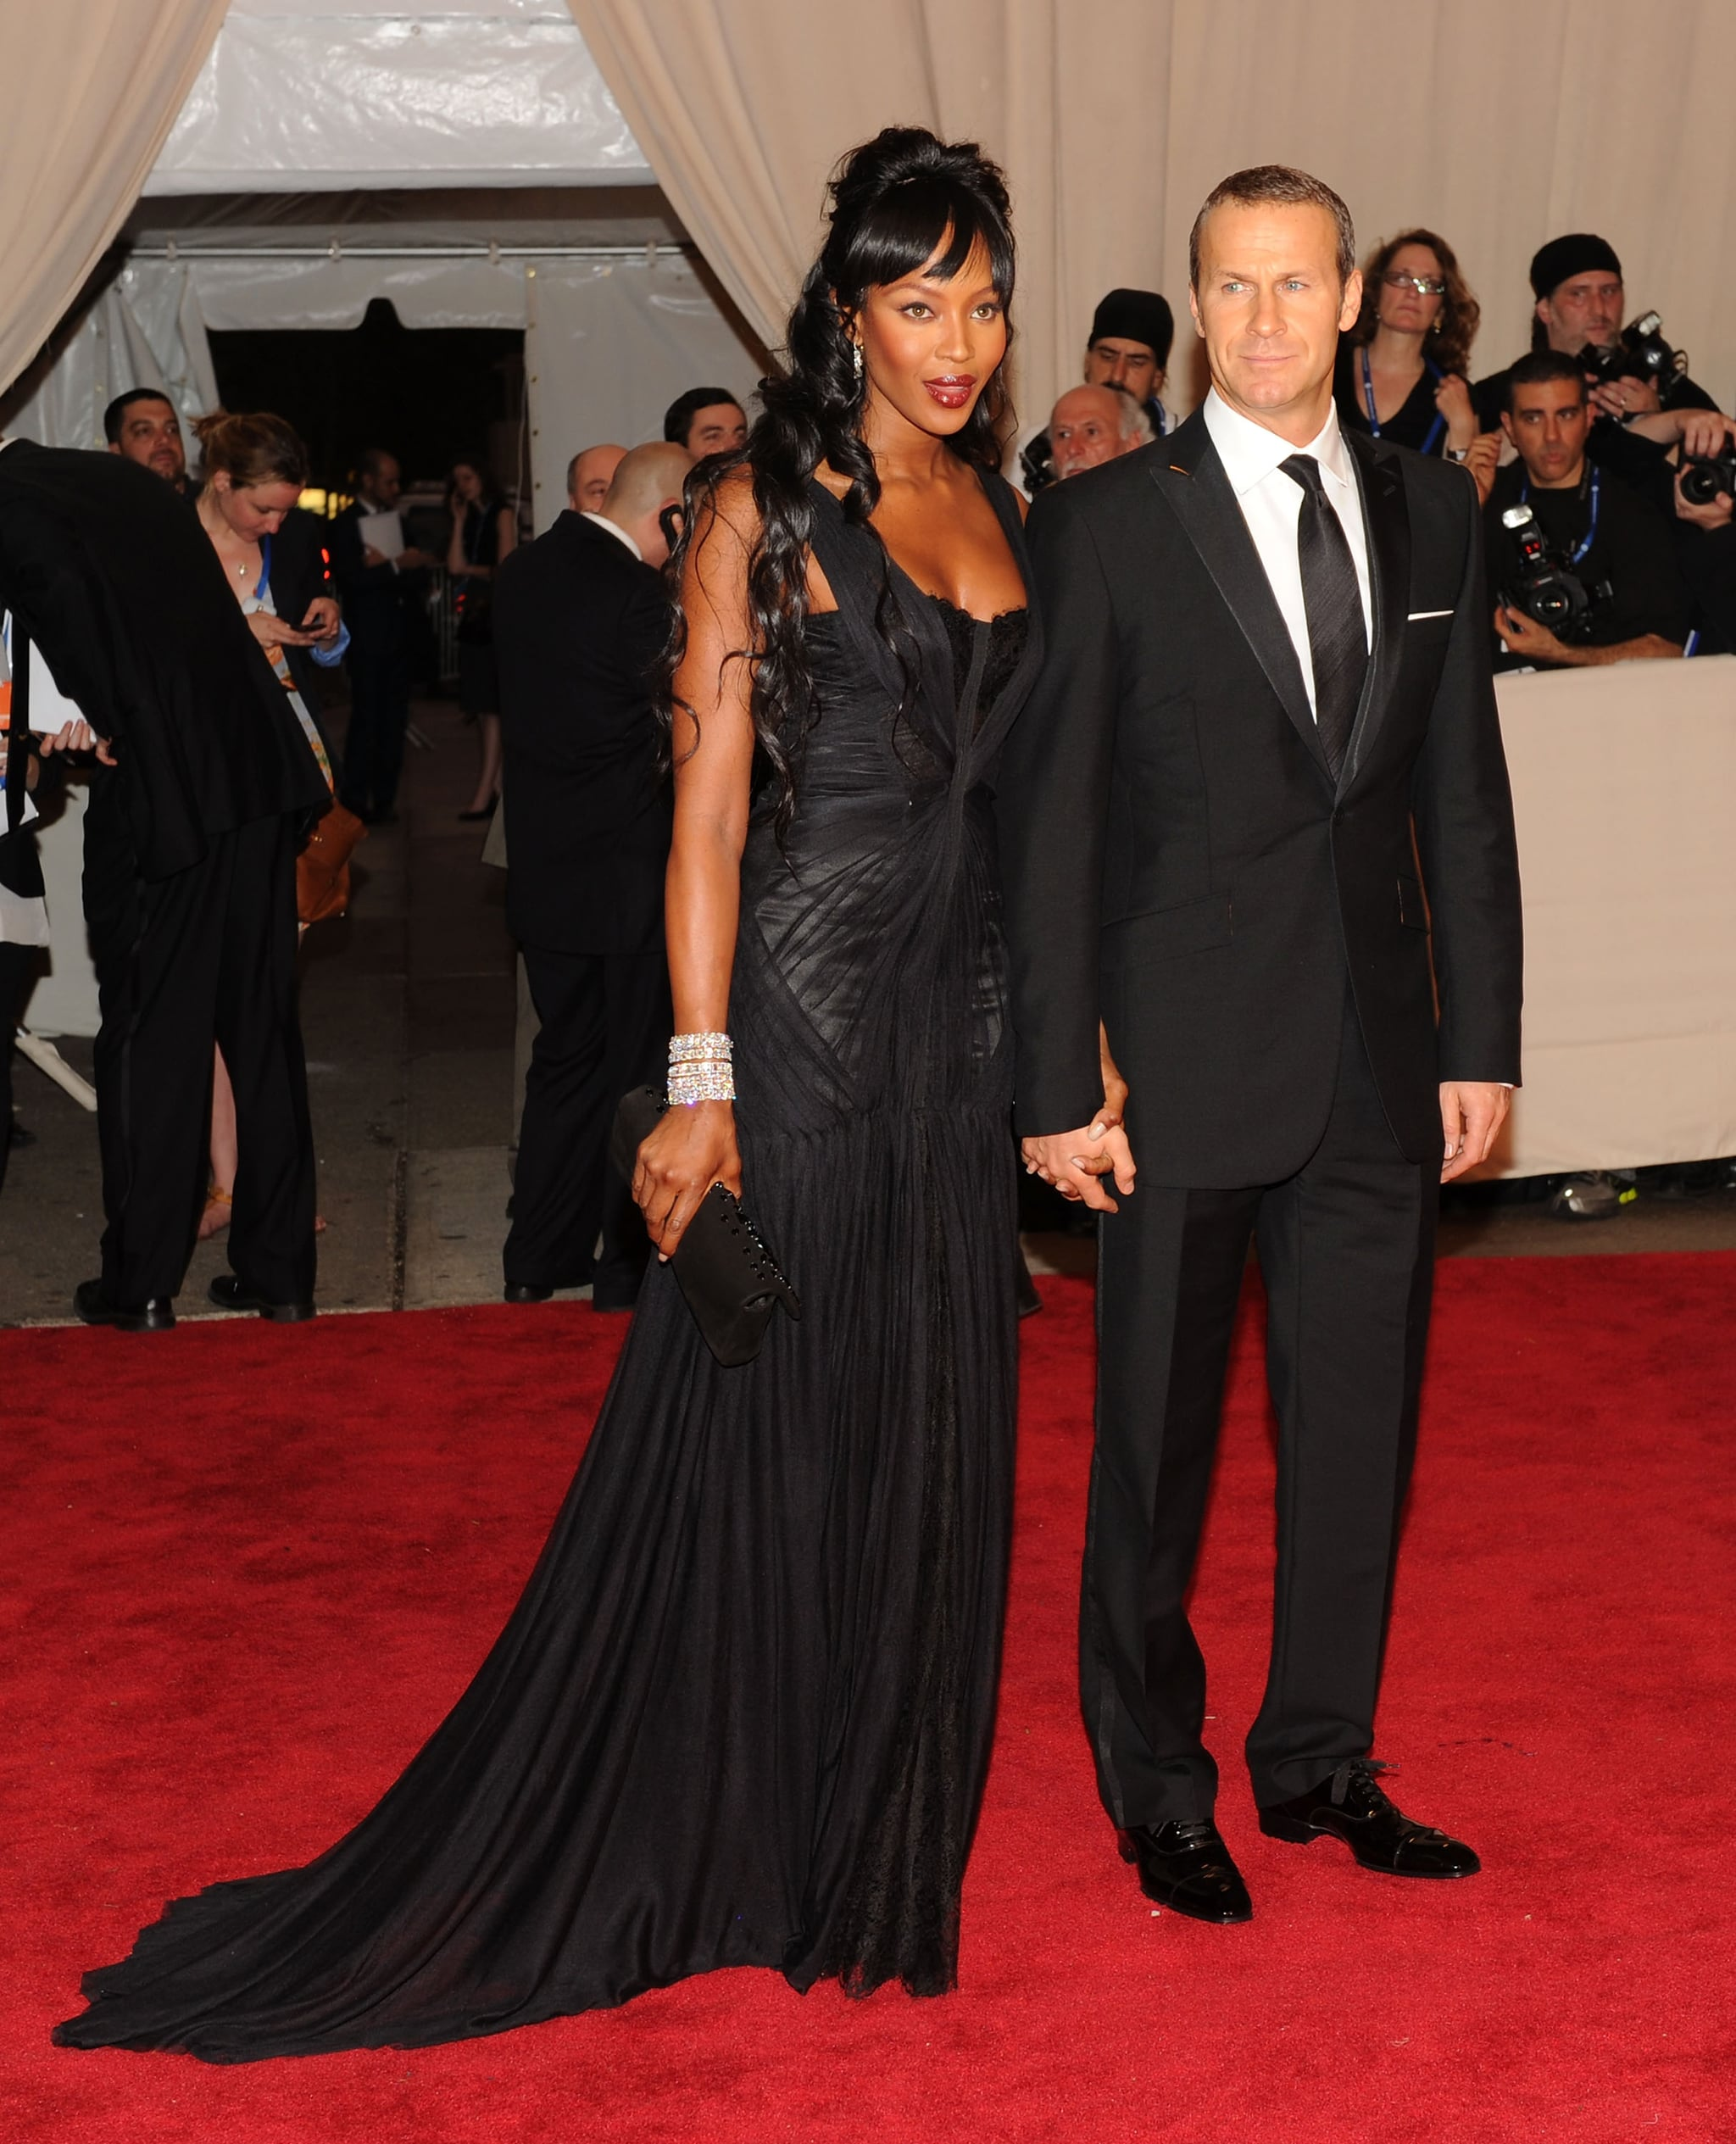 Naomi Campbell and Vladimir Doronin